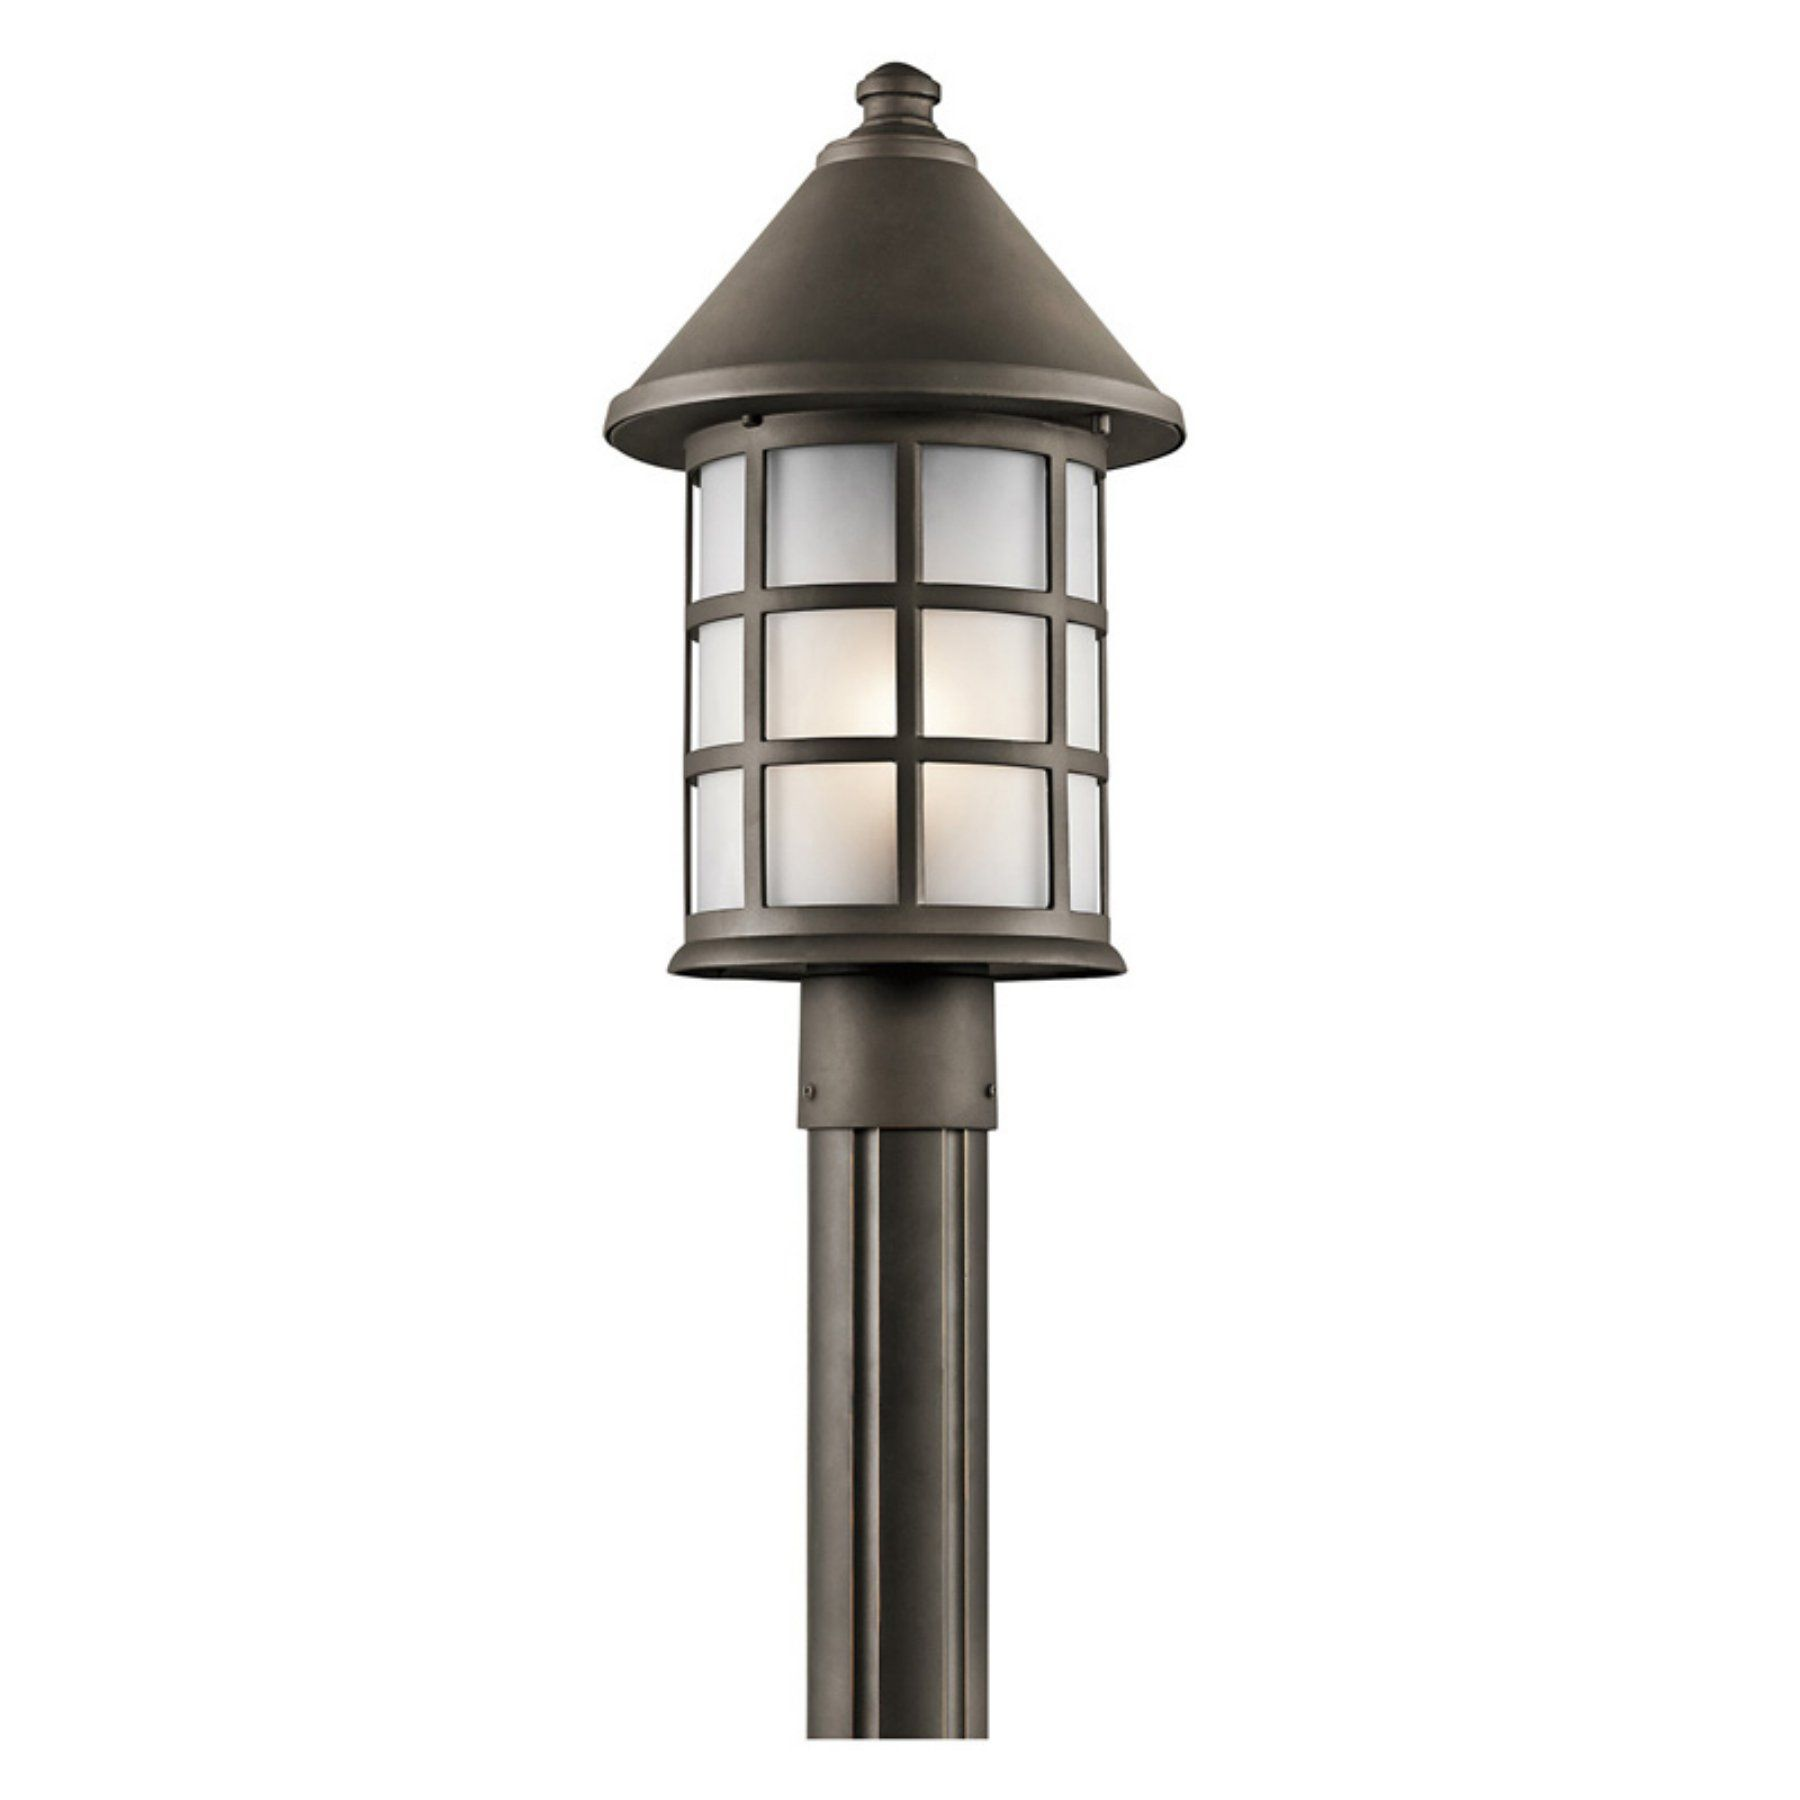 Kichler town light 49621oz outdoor post light 49621oz products kichler town light 49621oz outdoor post light 49621oz aloadofball Gallery